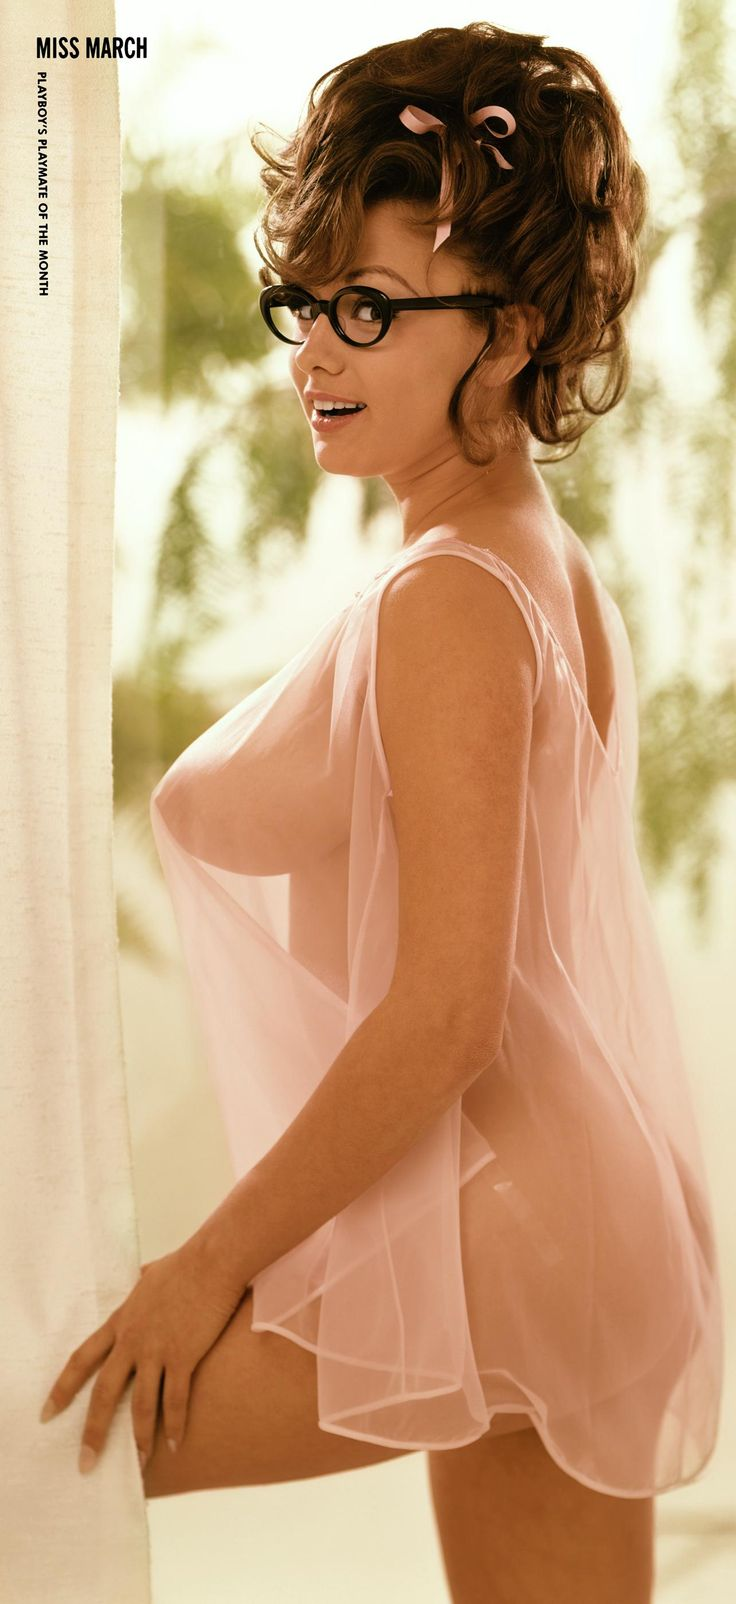 1000+ images about Vintage Big Tits on Pinterest | Legends, Models ...